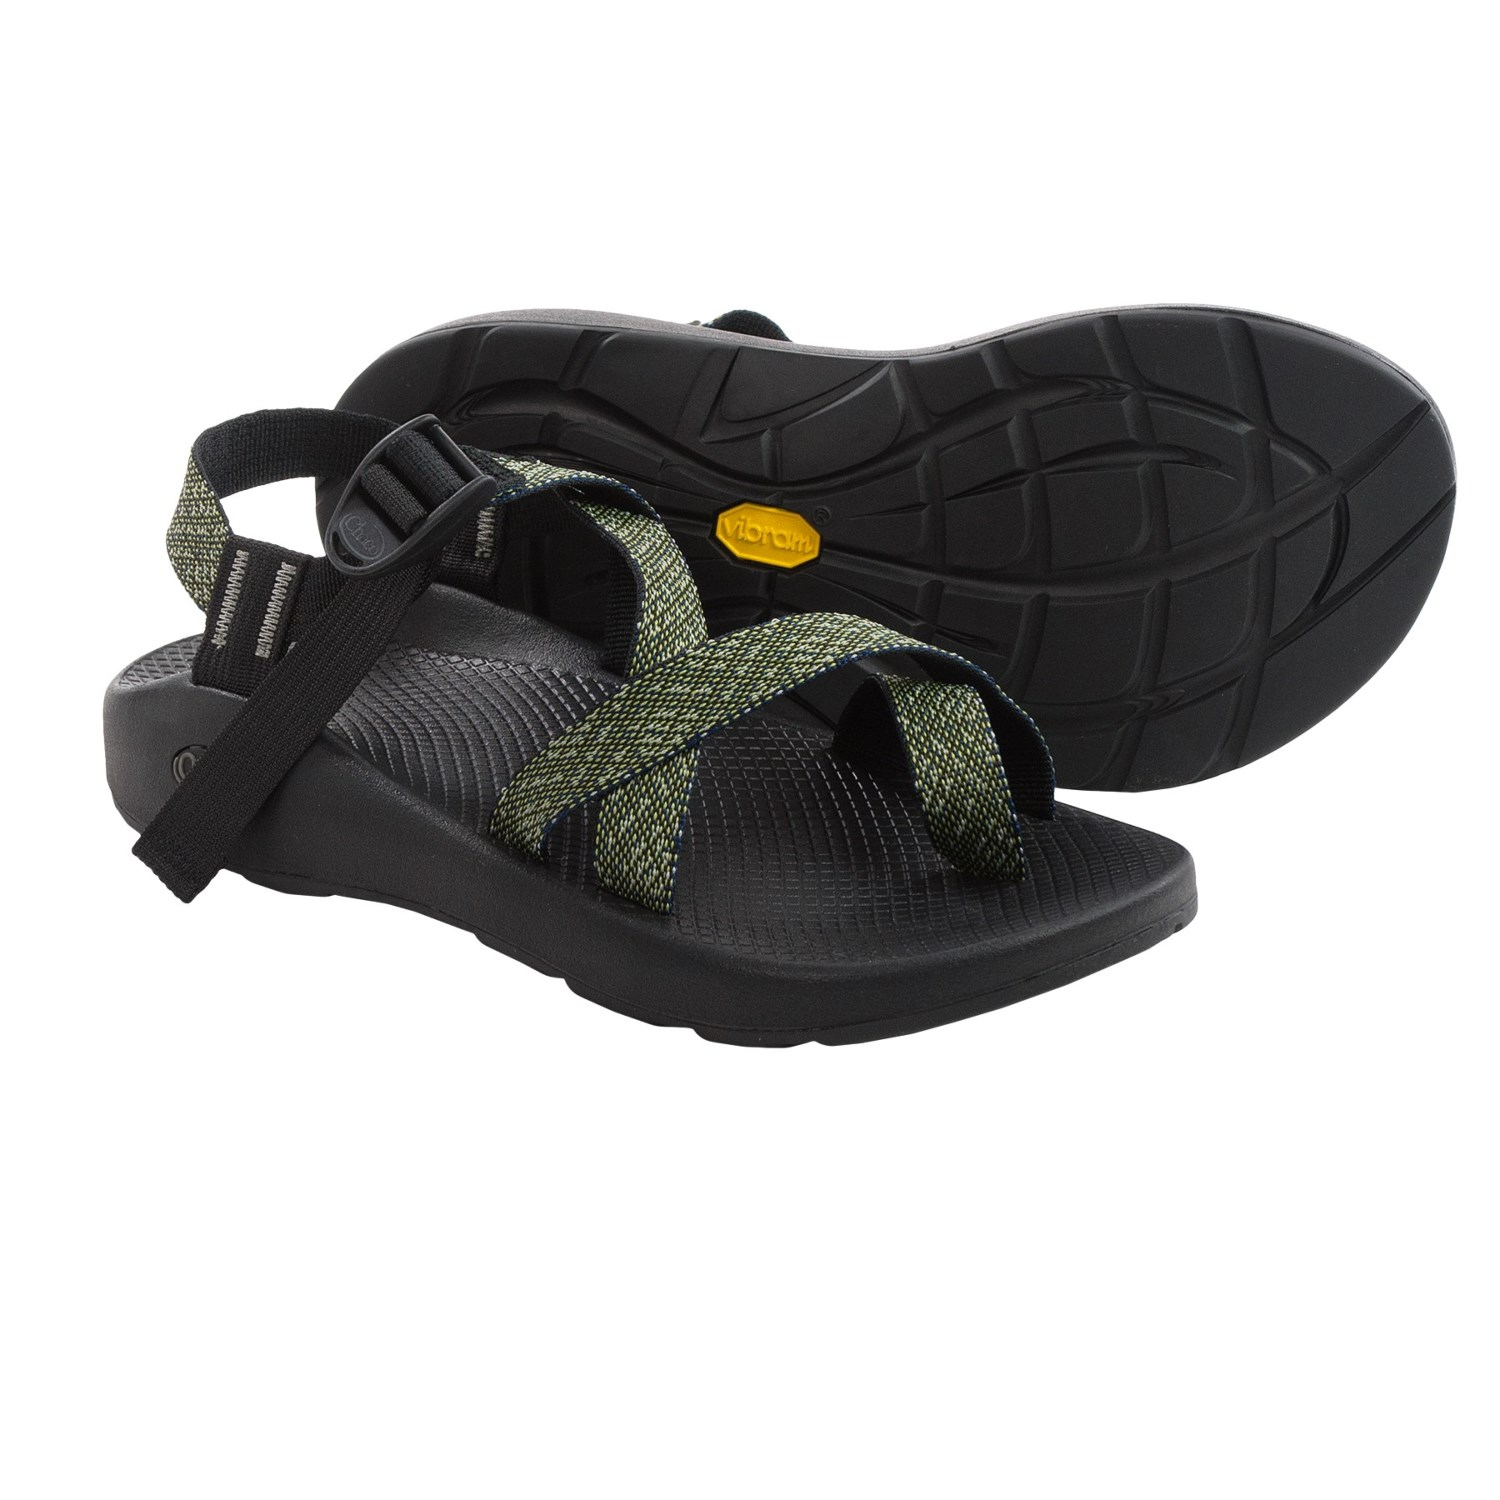 Chaco Z 2 174 Yampa Sport Sandals For Men Save 42